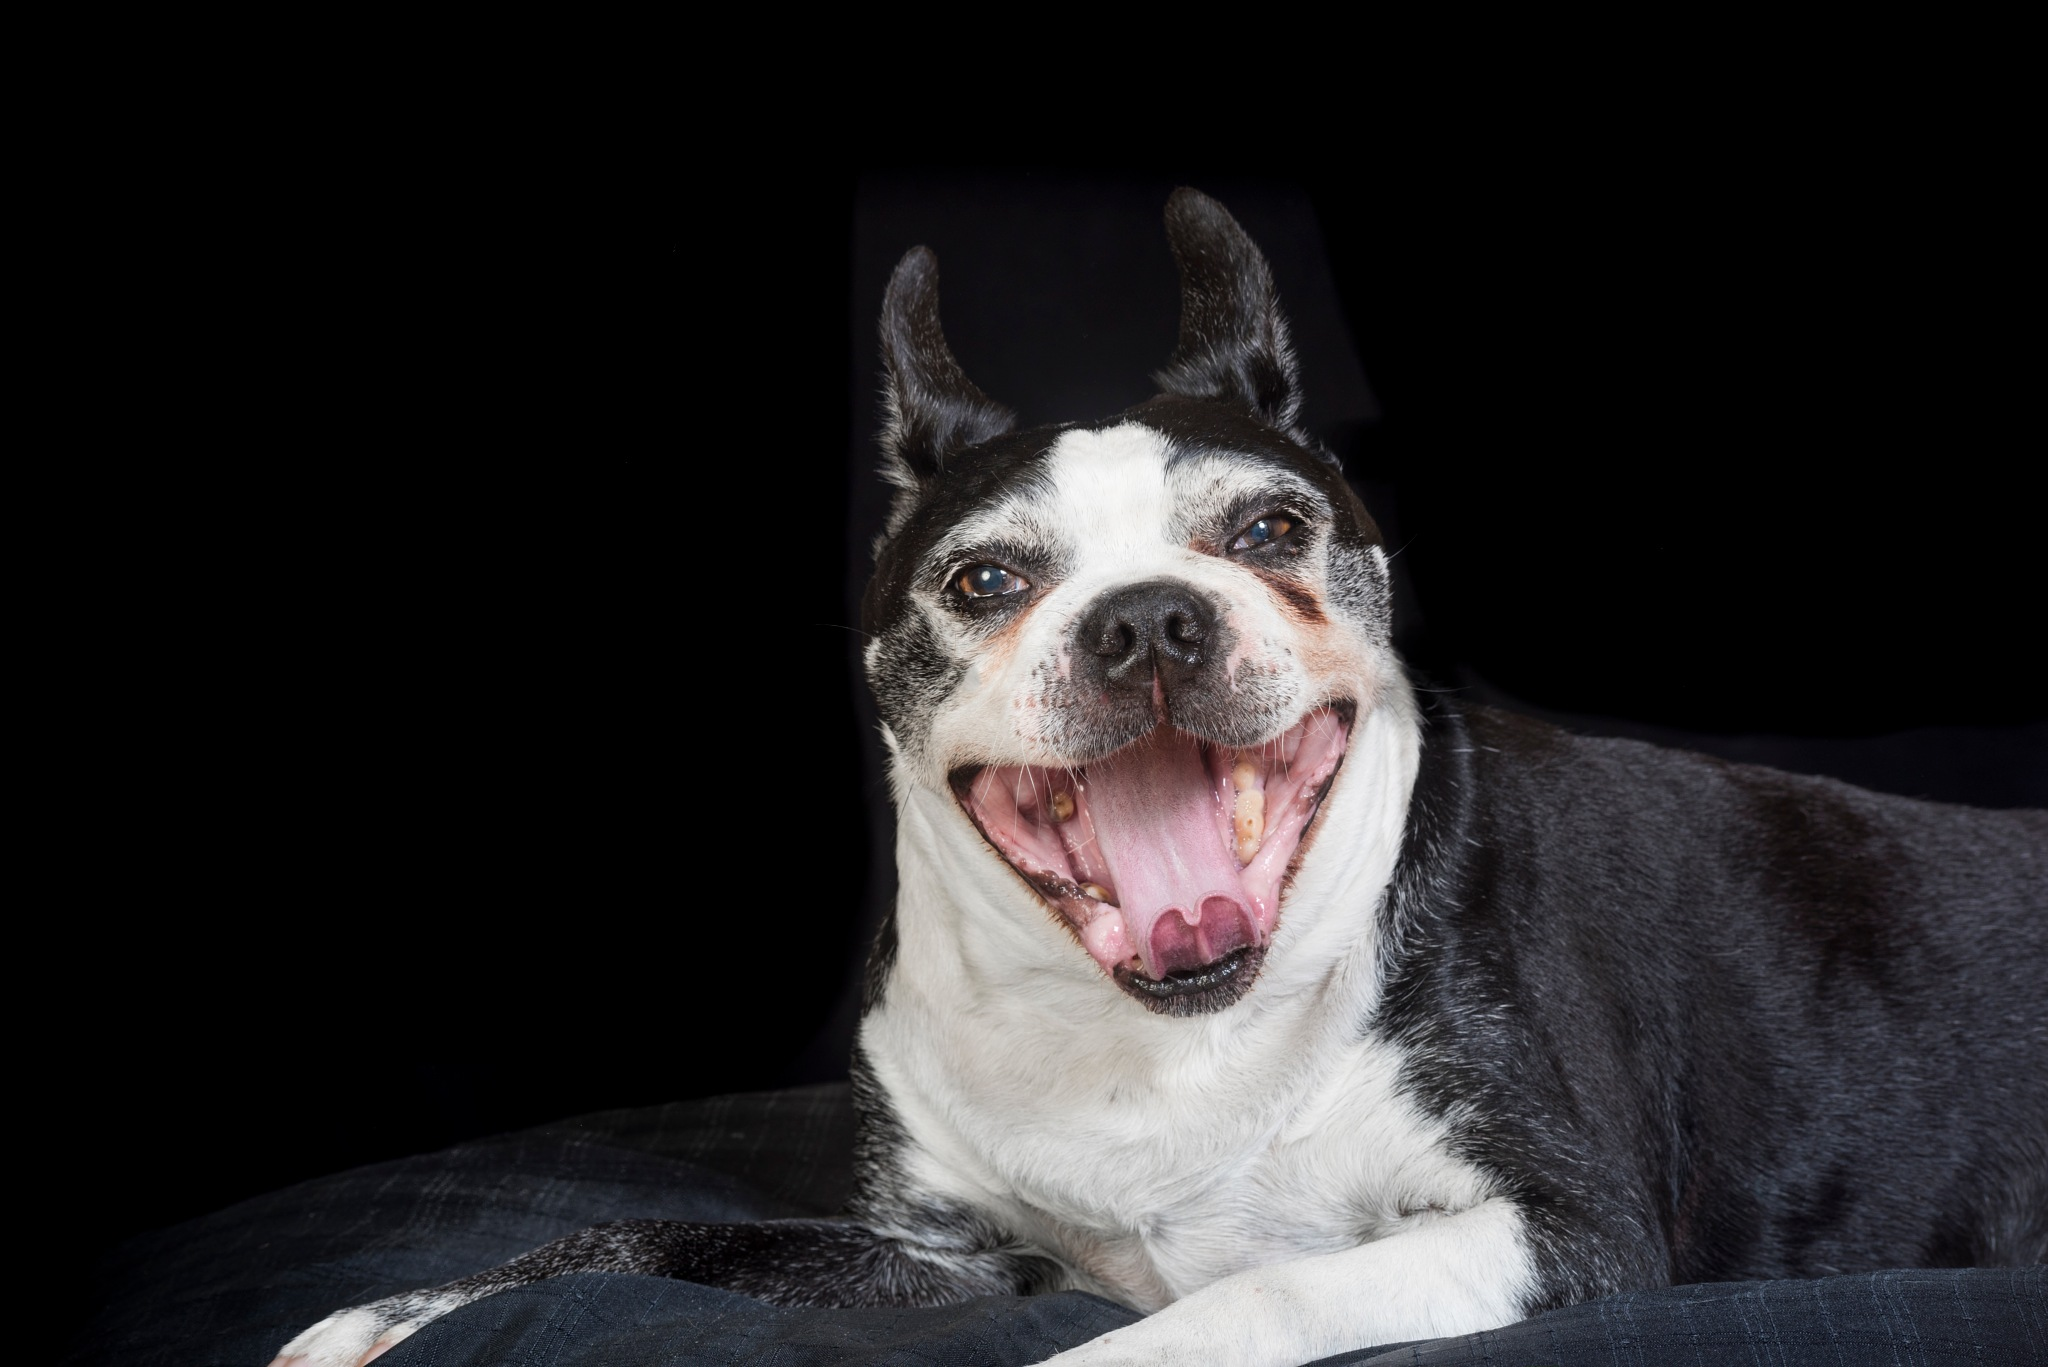 Cute and old Boston terrier dog with mouth open by Eugenie Robitaille